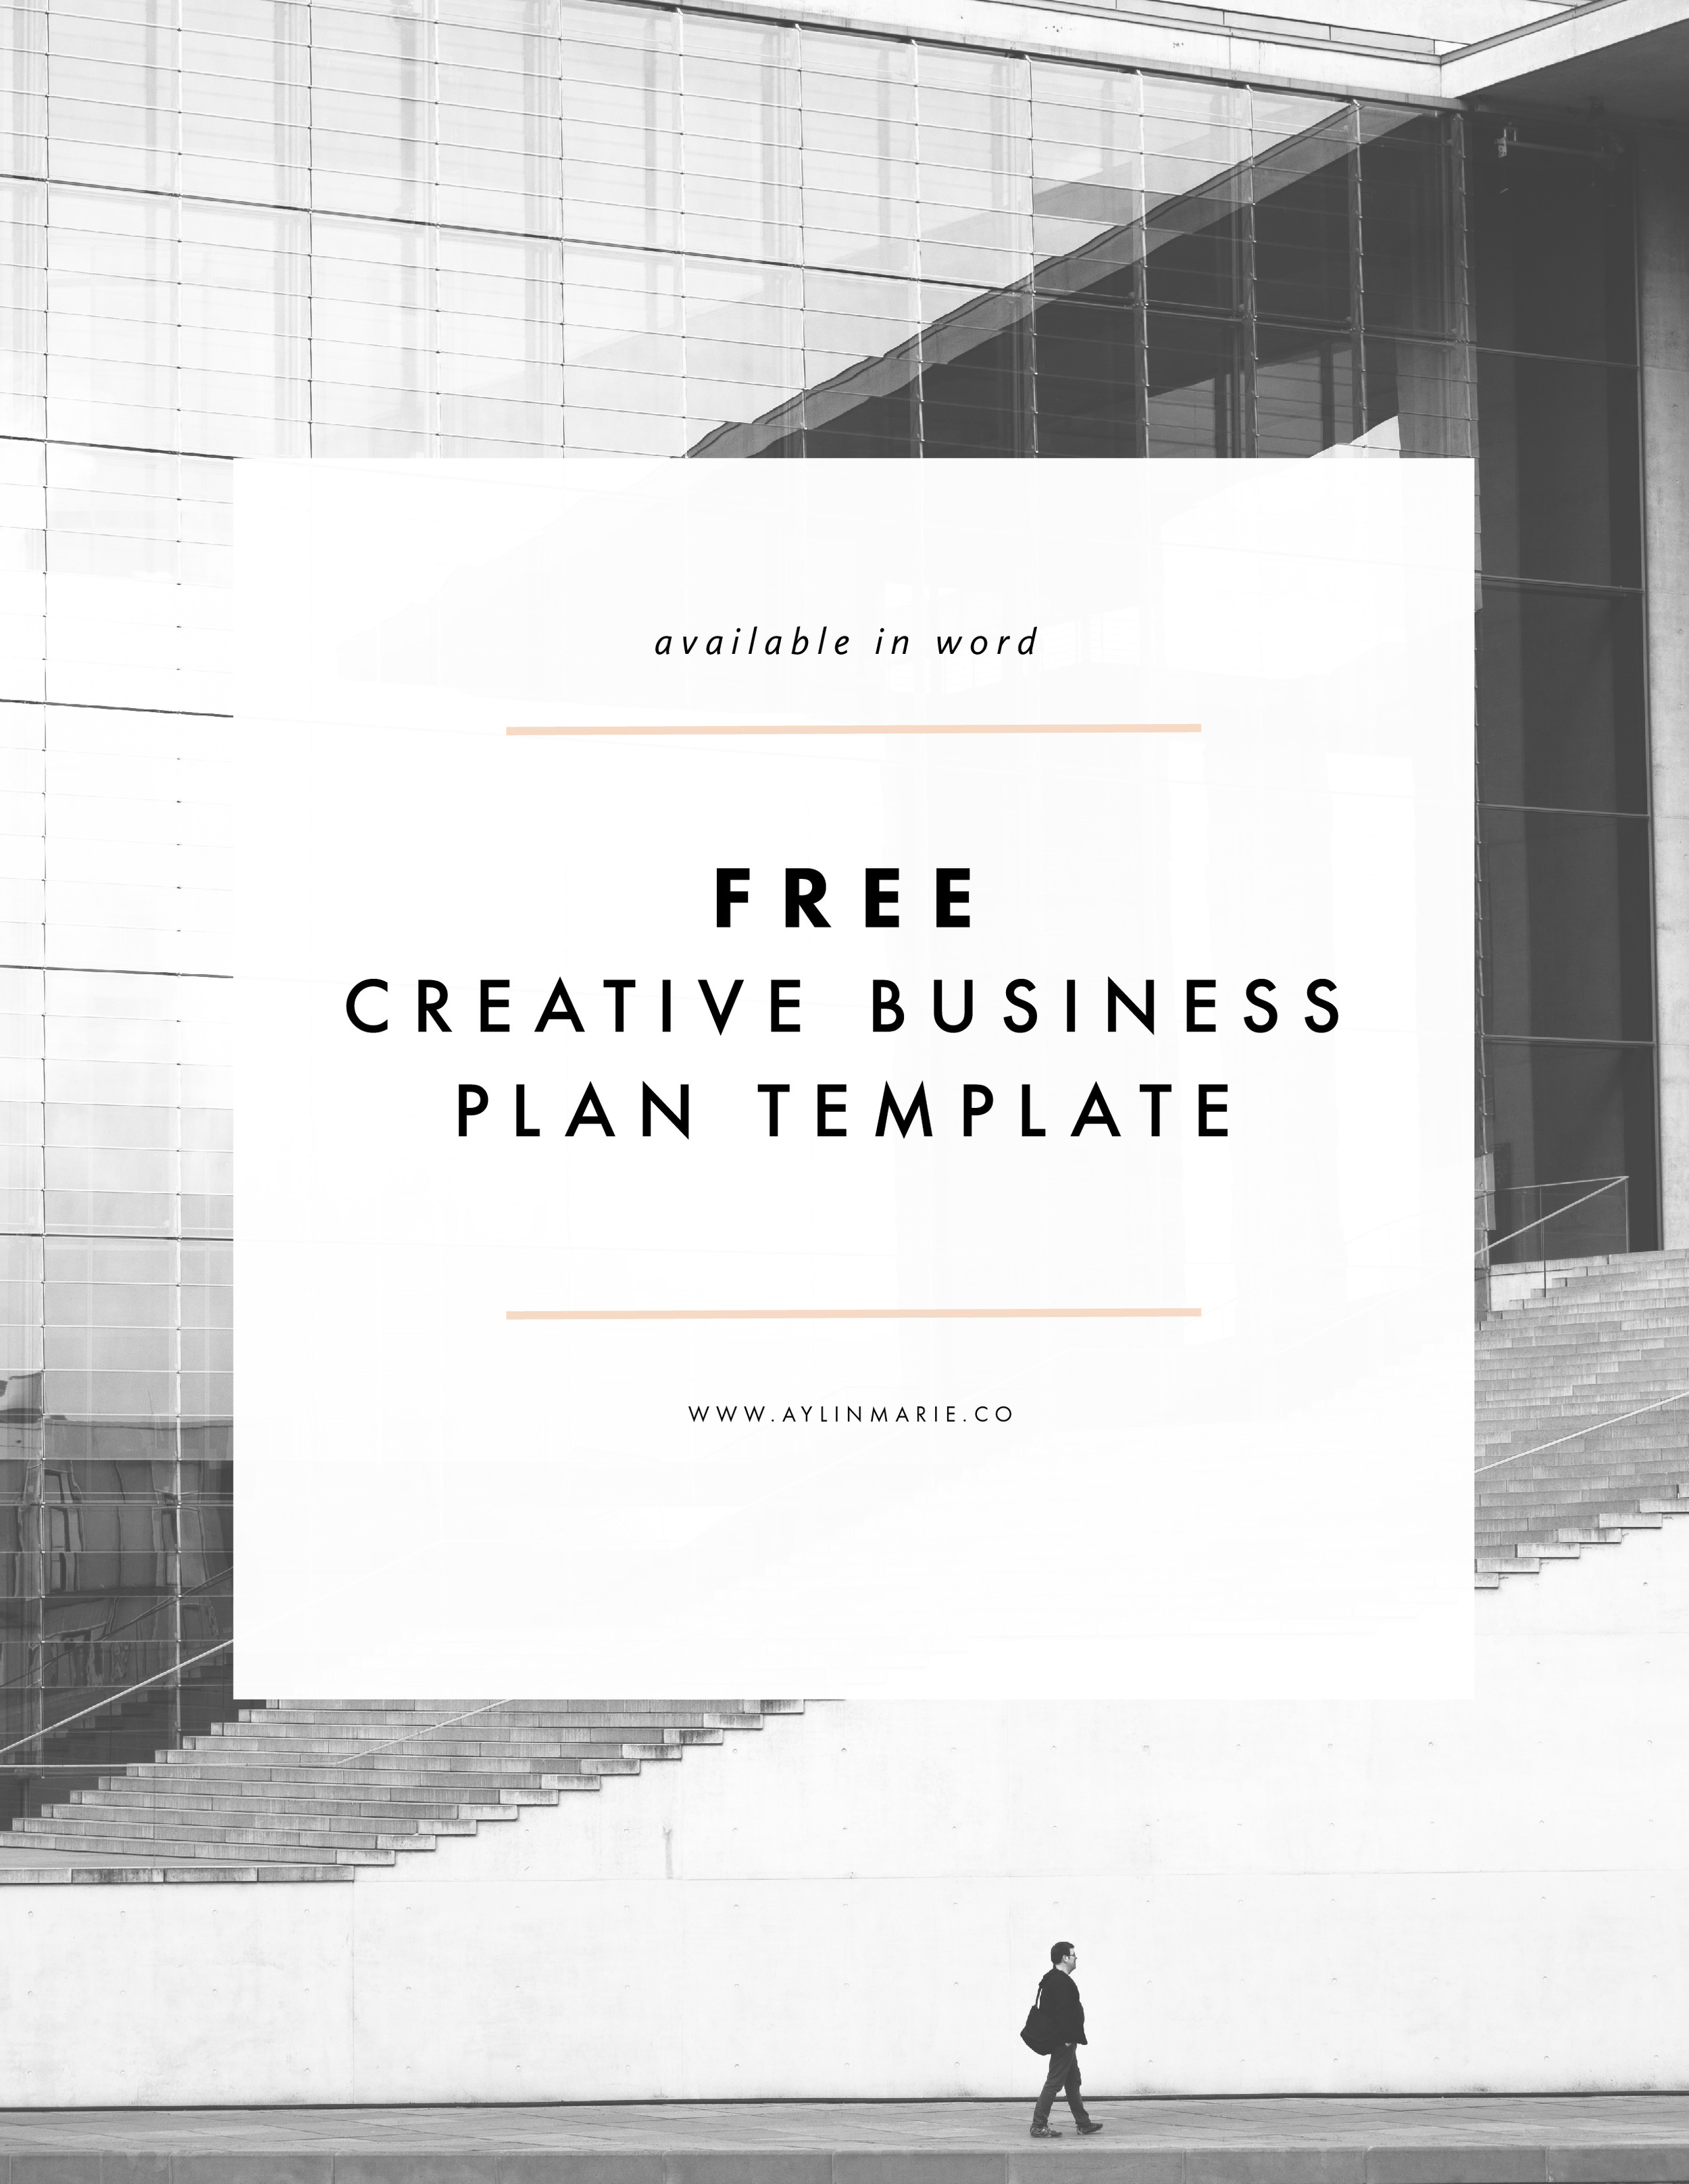 Freebie creative business plan template aylin marie freebie creative business plan template cheaphphosting